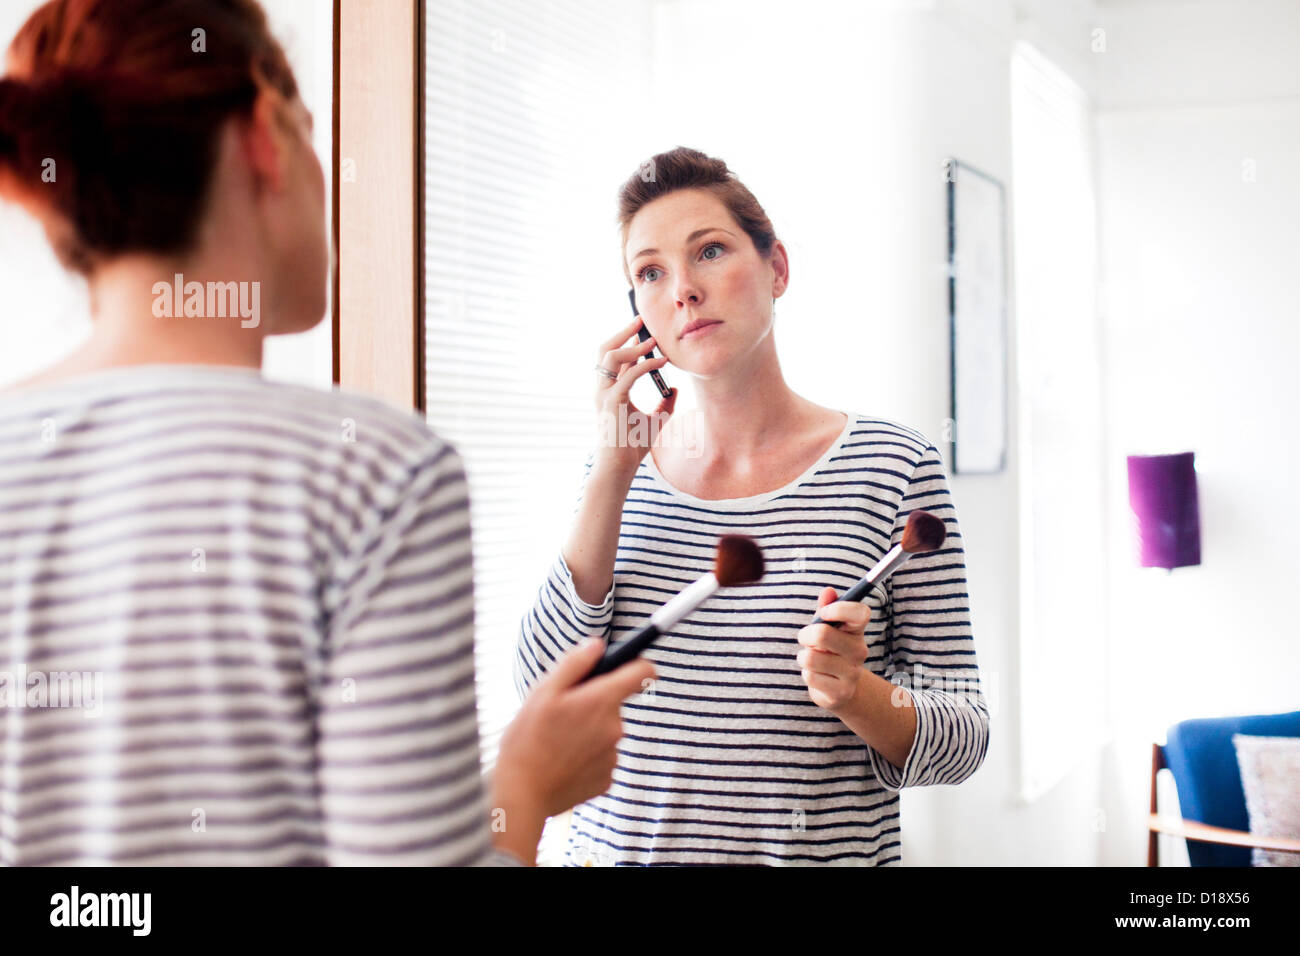 Woman on cell phone applying make up - Stock Image